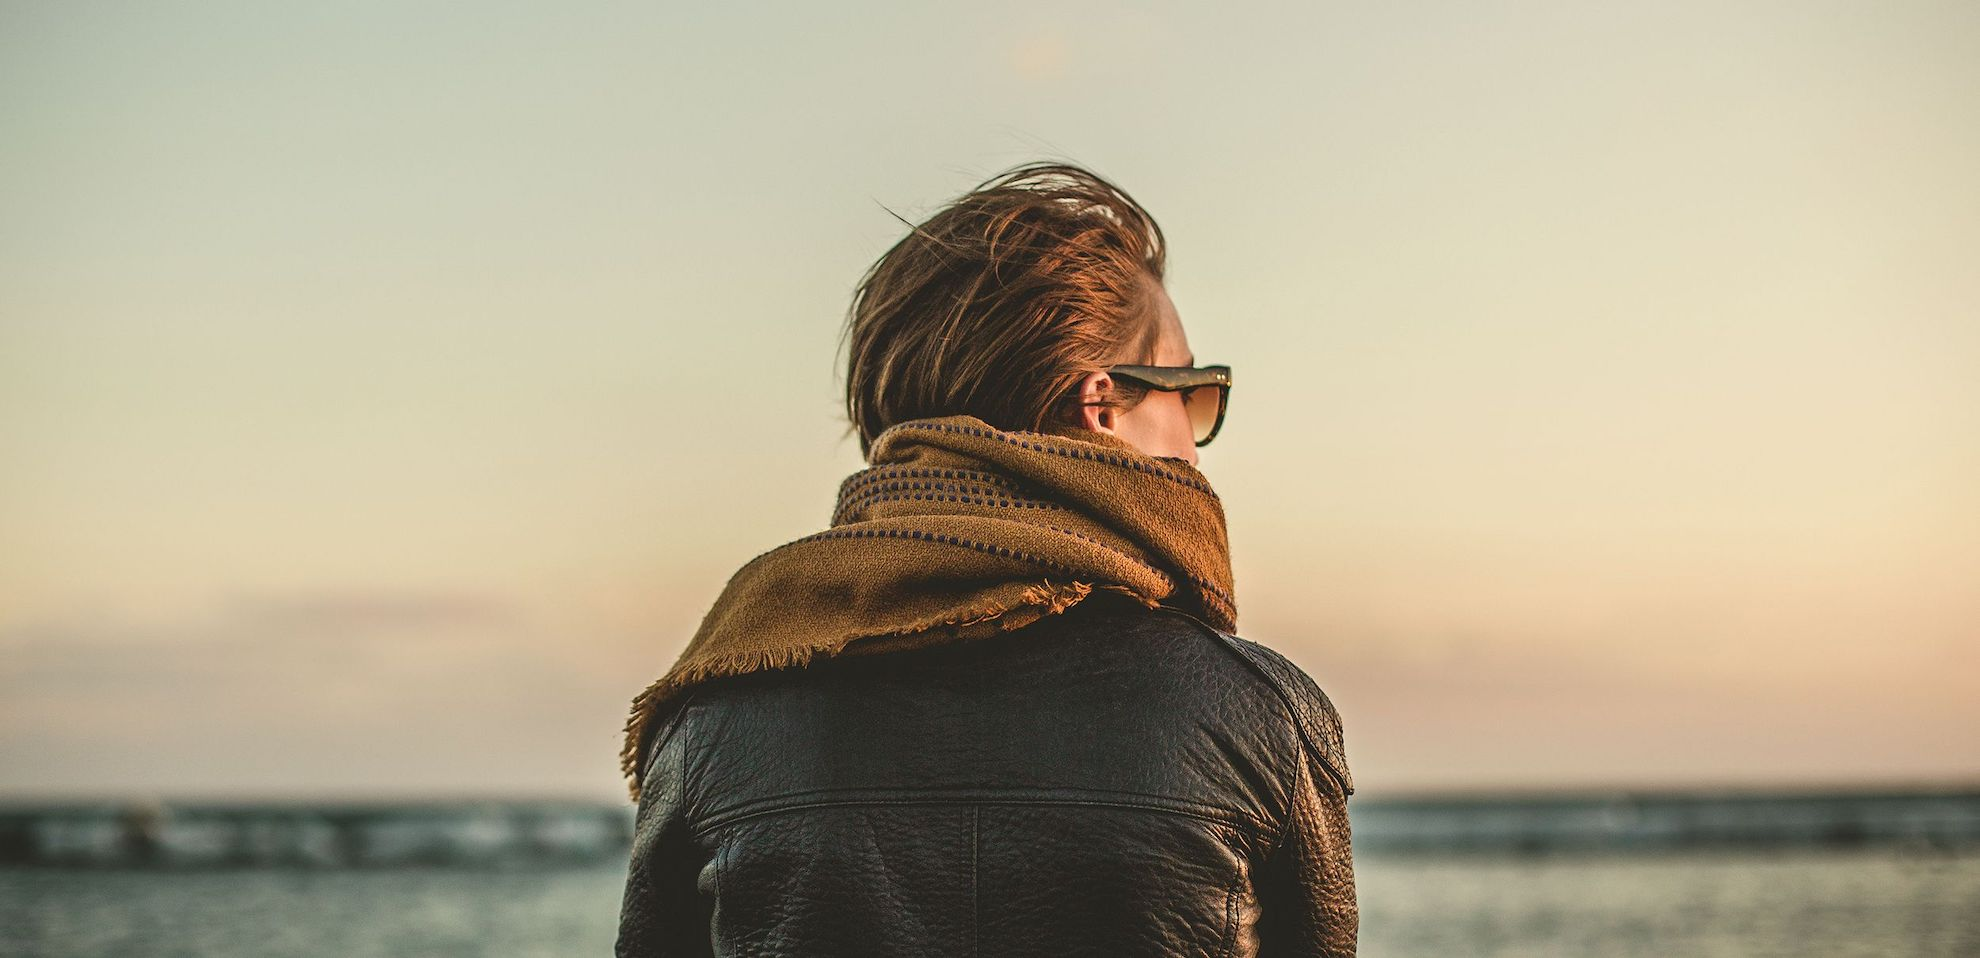 looking into the distance, sunglasses, scarf, leather jacket